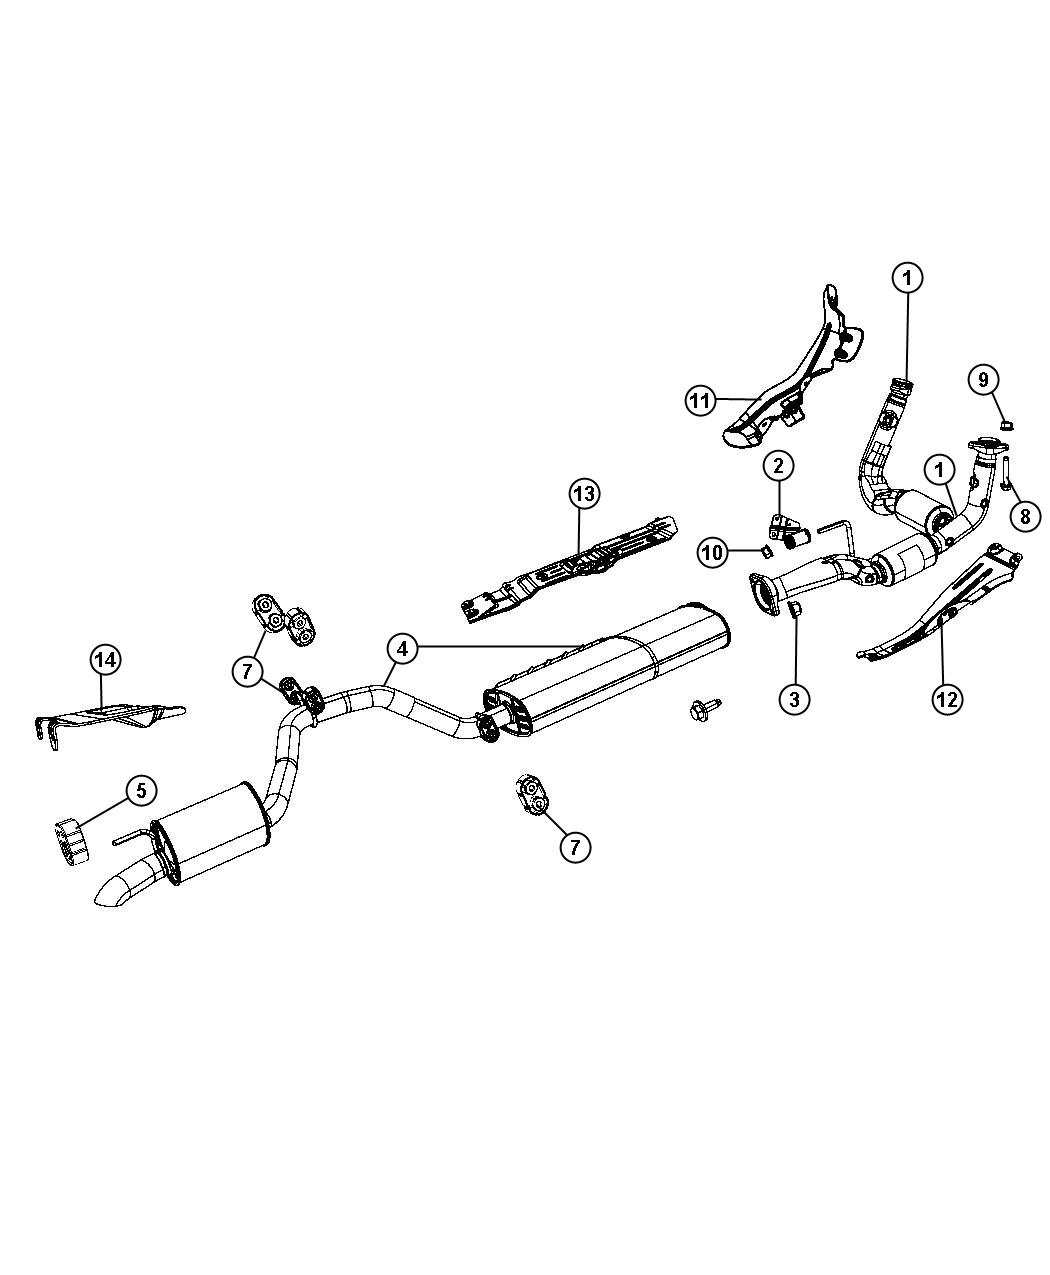 jeep commander exhaust diagram